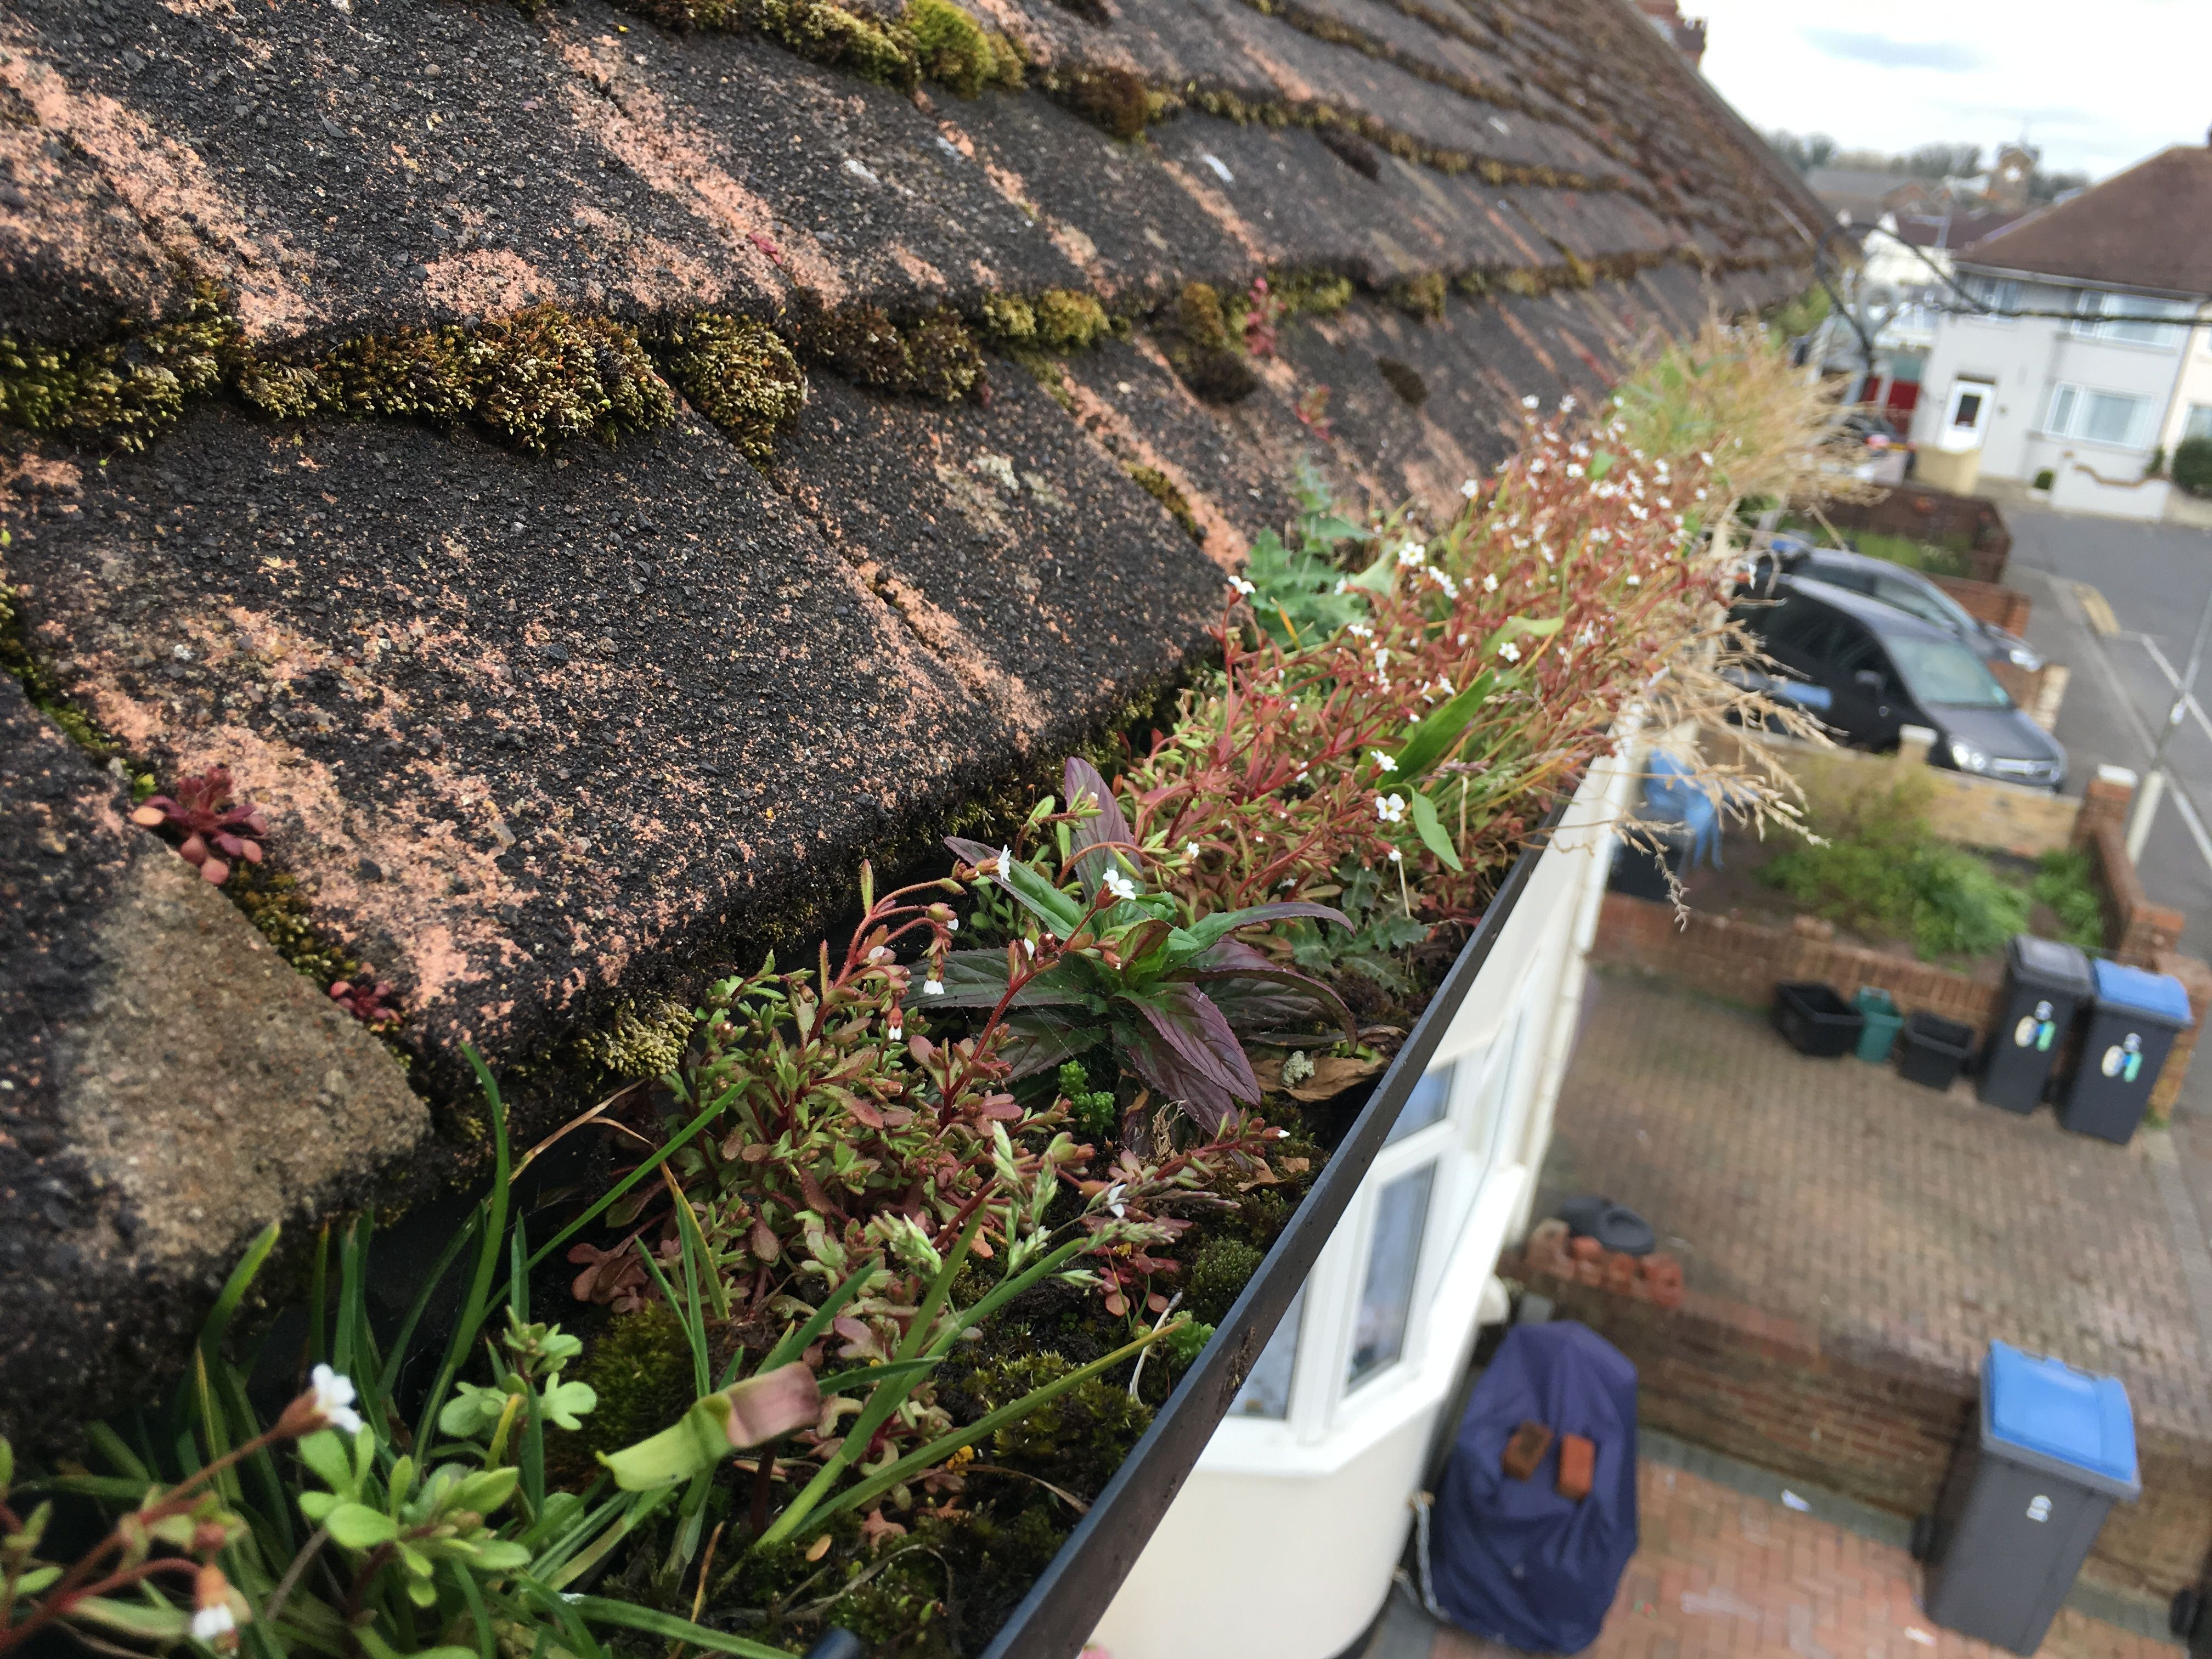 Roof cleaning service vancouver wa cleaning service